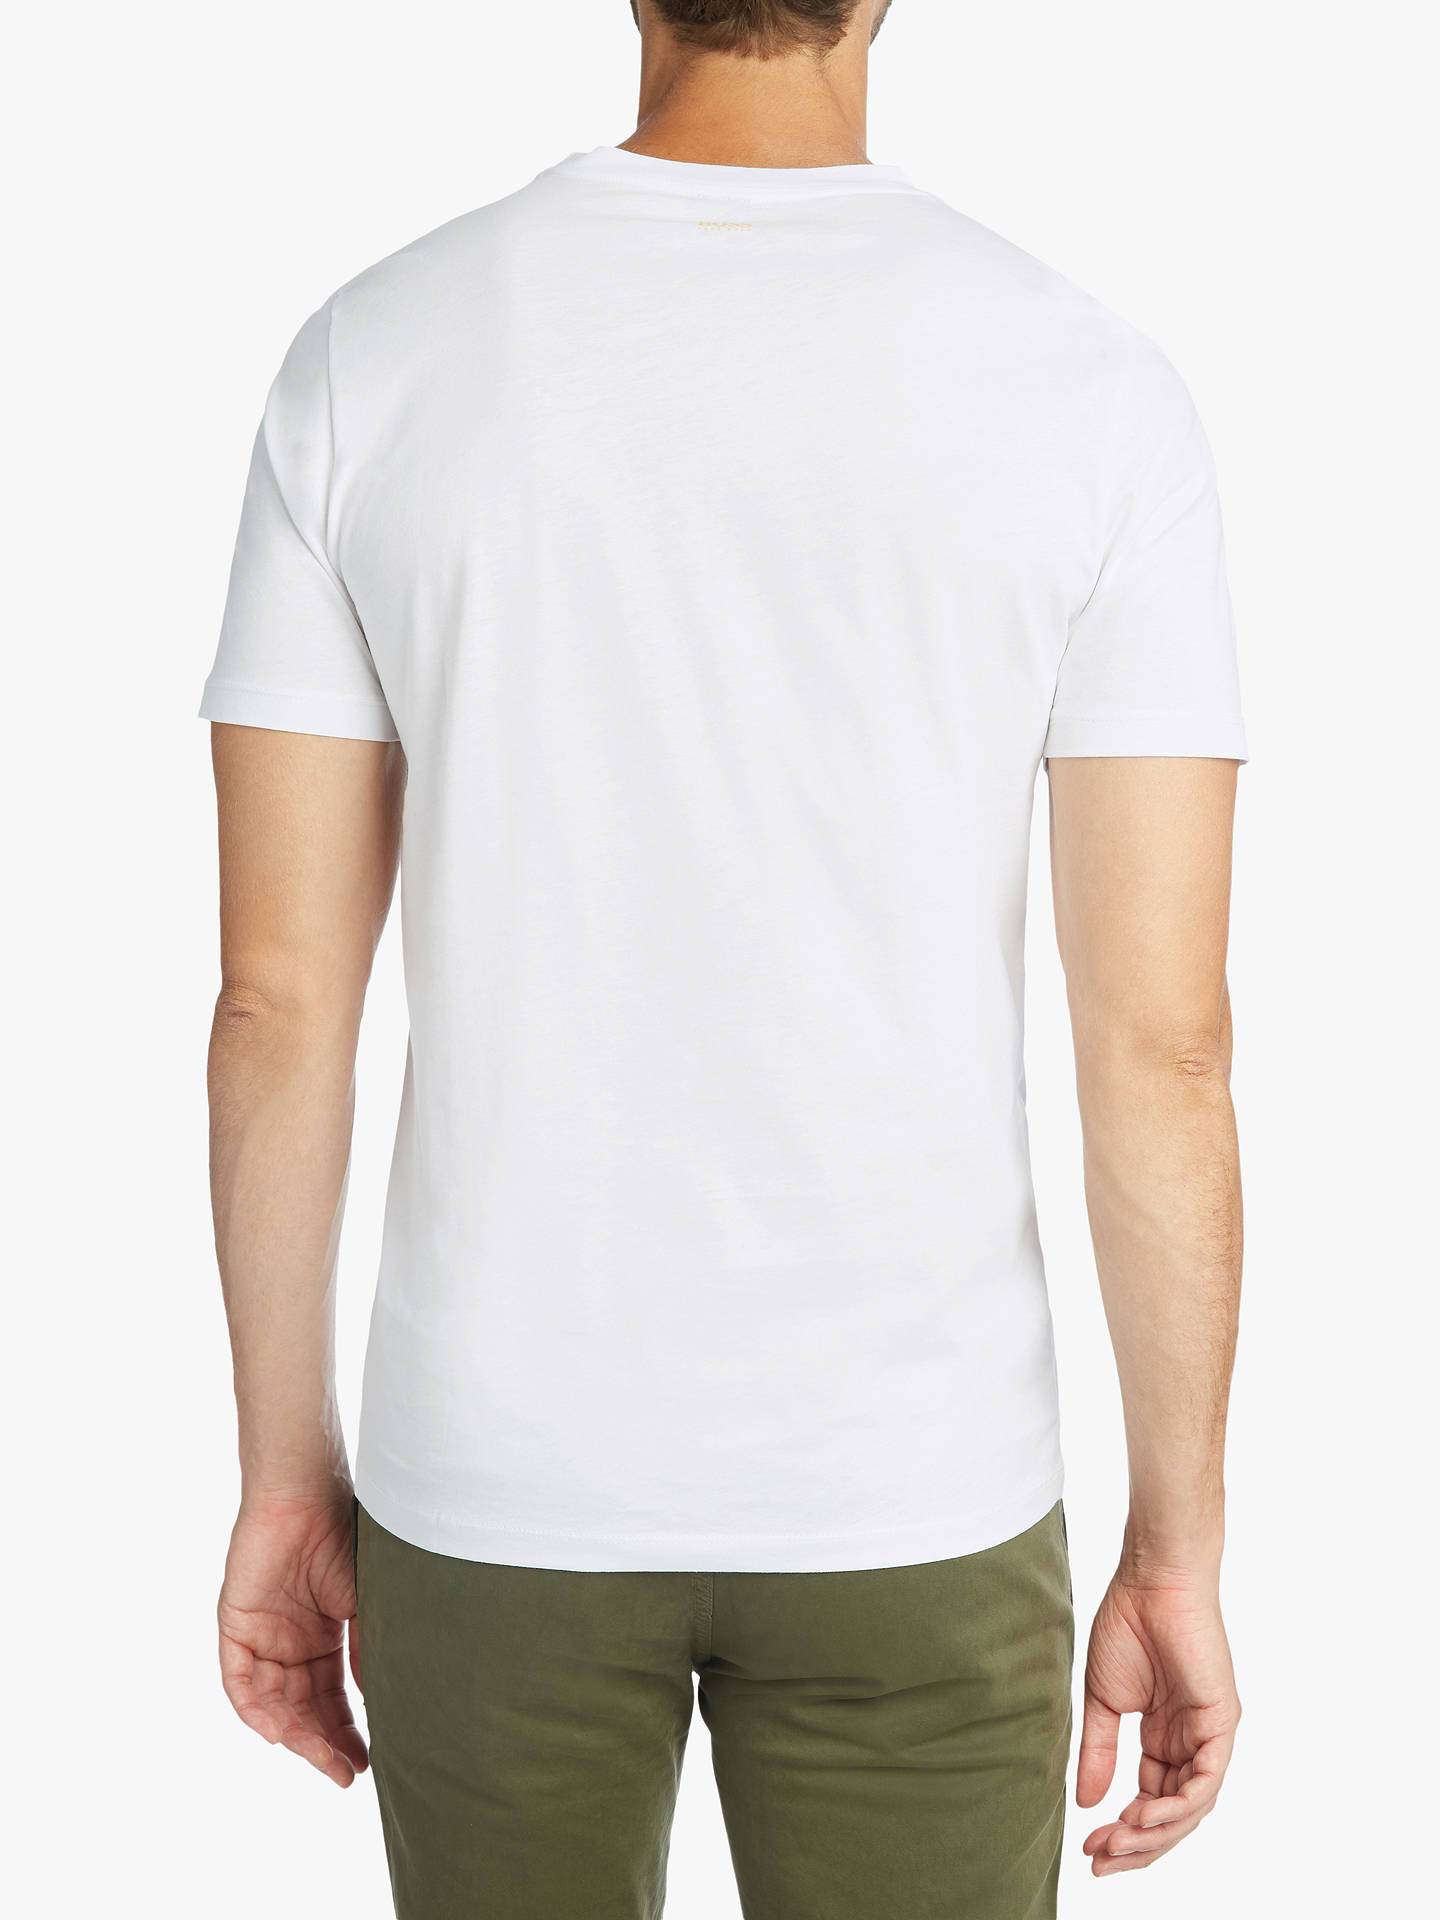 Buy BOSS TLax 2 Short Sleeve Graphic T-Shirt, White, XXXL Online at johnlewis.com